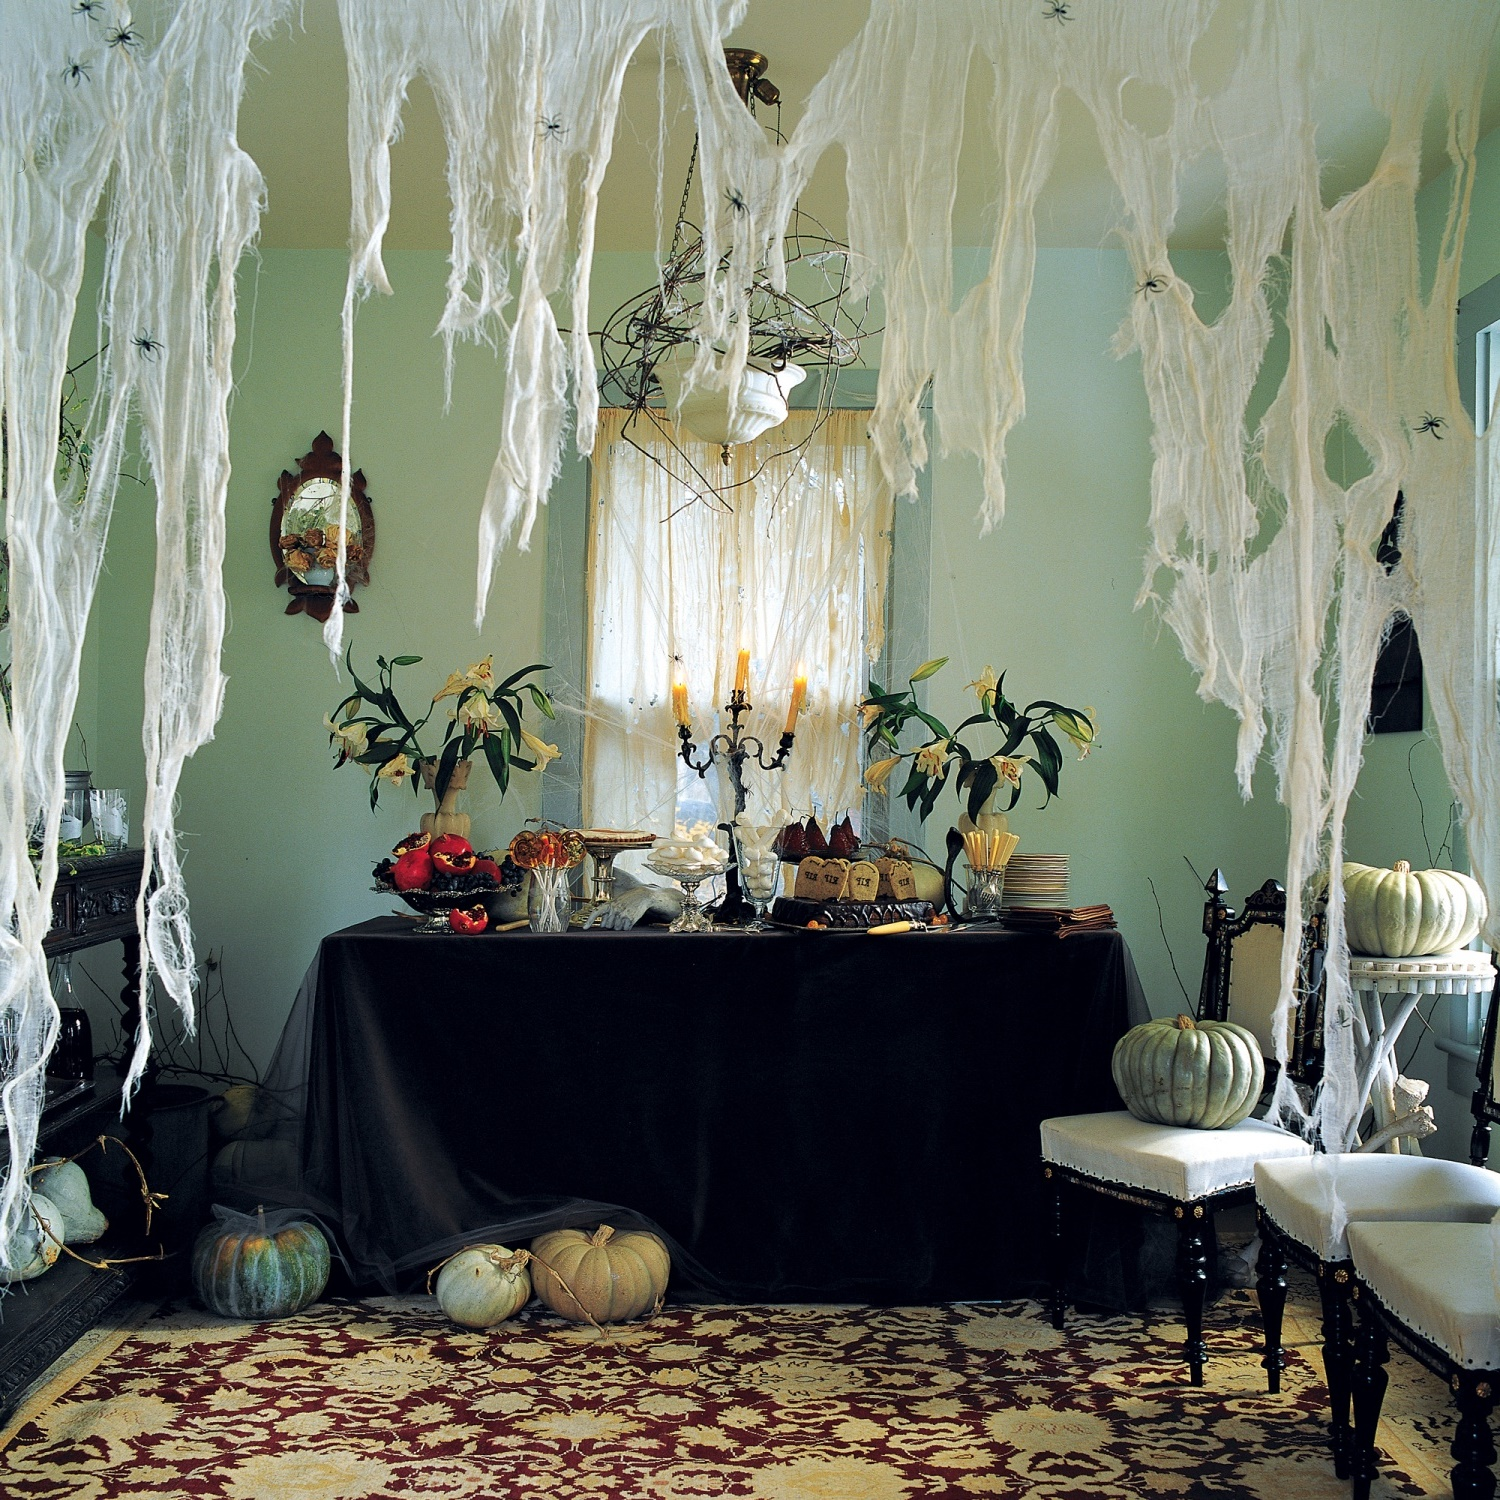 Http Awesome11 Com 11 Awesome Halloween Indoor Decorations